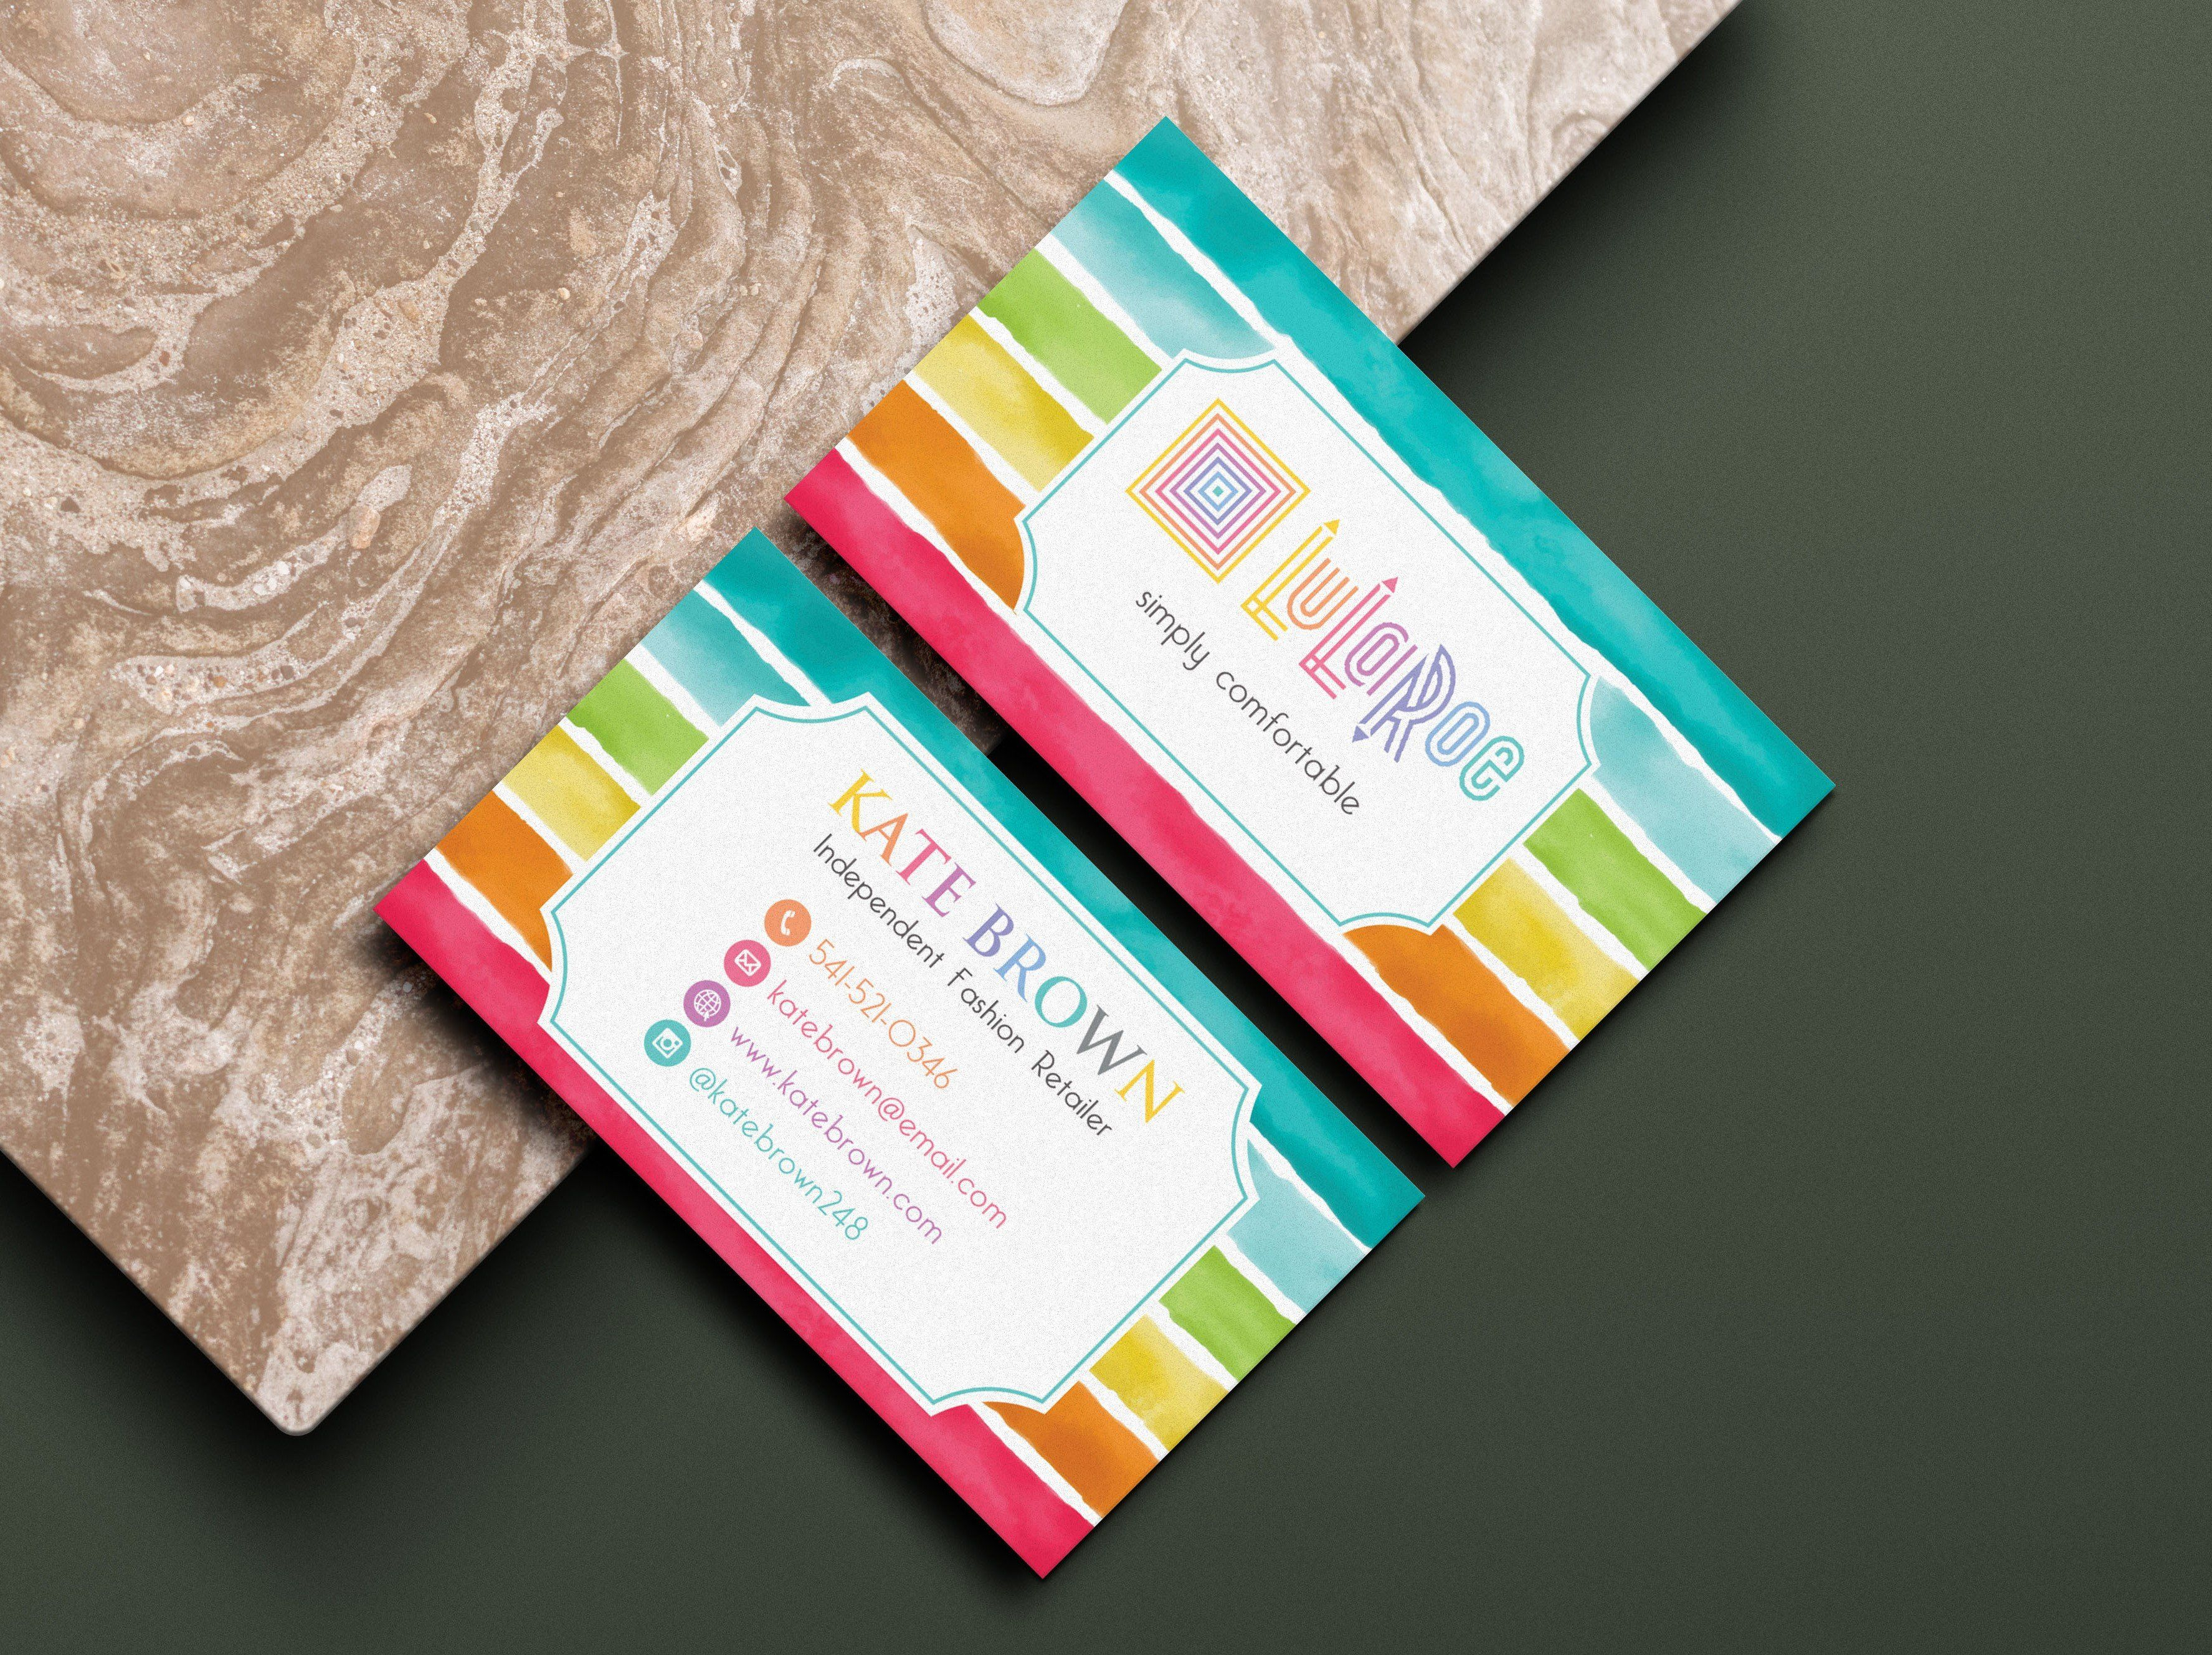 Personalized Lularoe Business Cards Watercolor Lularoe Template Design Llr1 Lularoe Business Cards Lularoe Business Template Design